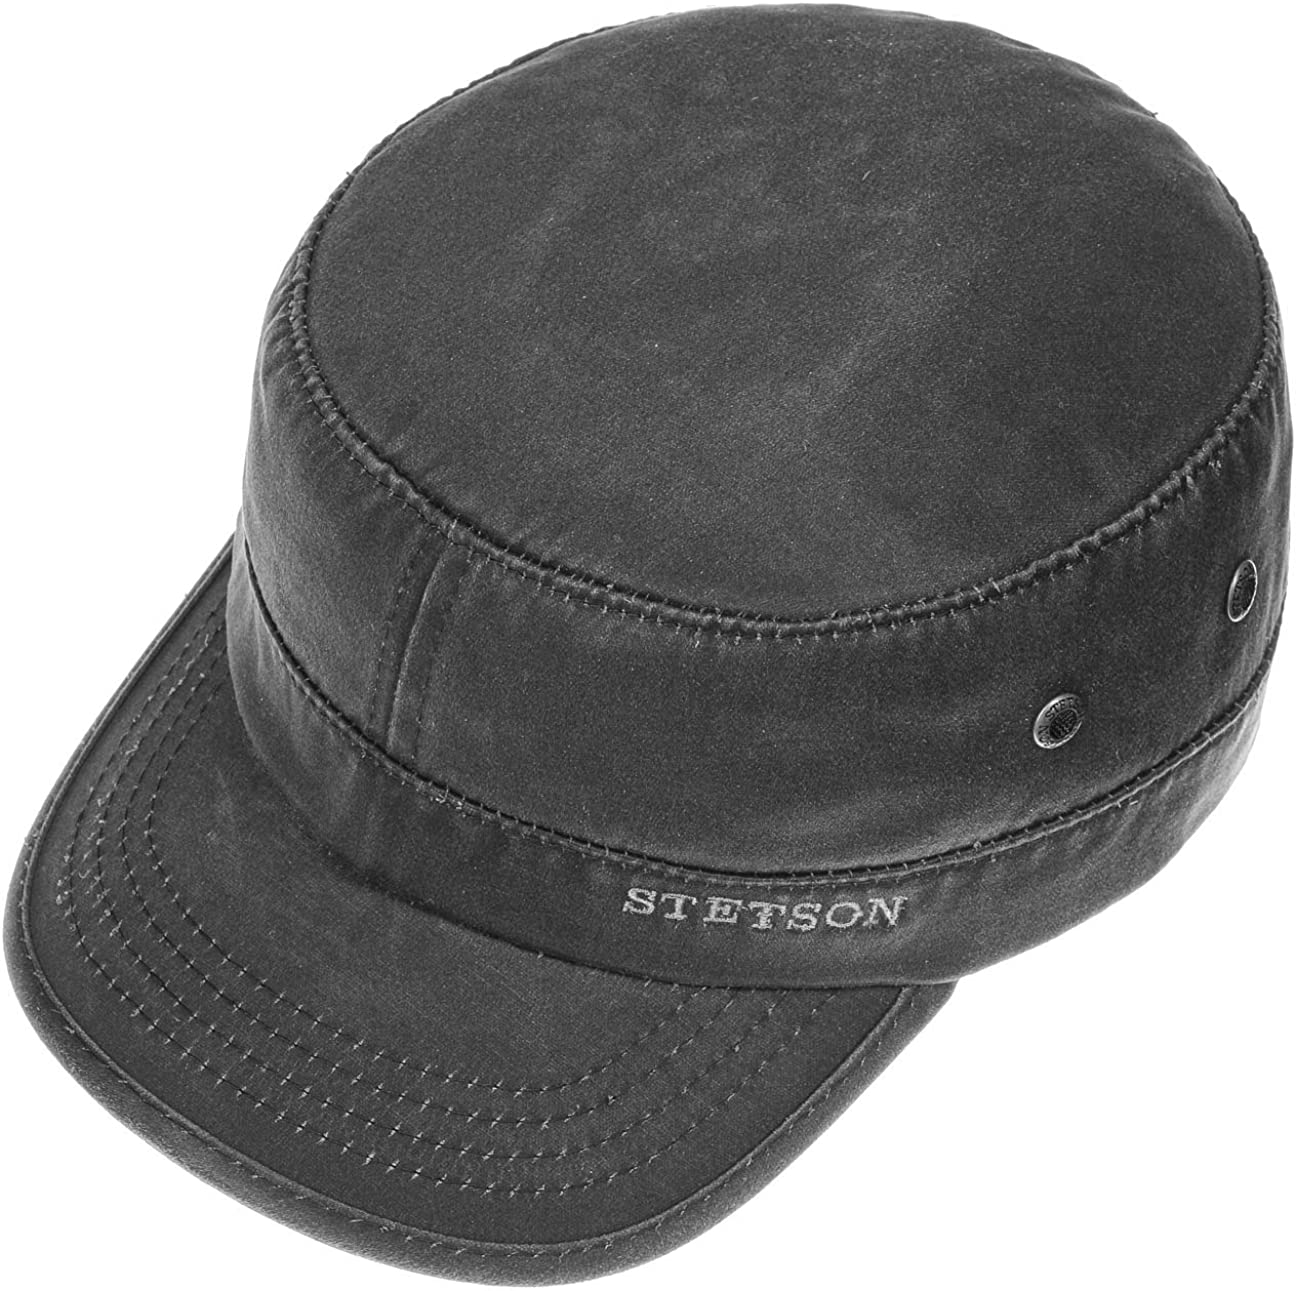 Stetson Datto Armycap Hombre - Algodón Impermeable - Invierno ...